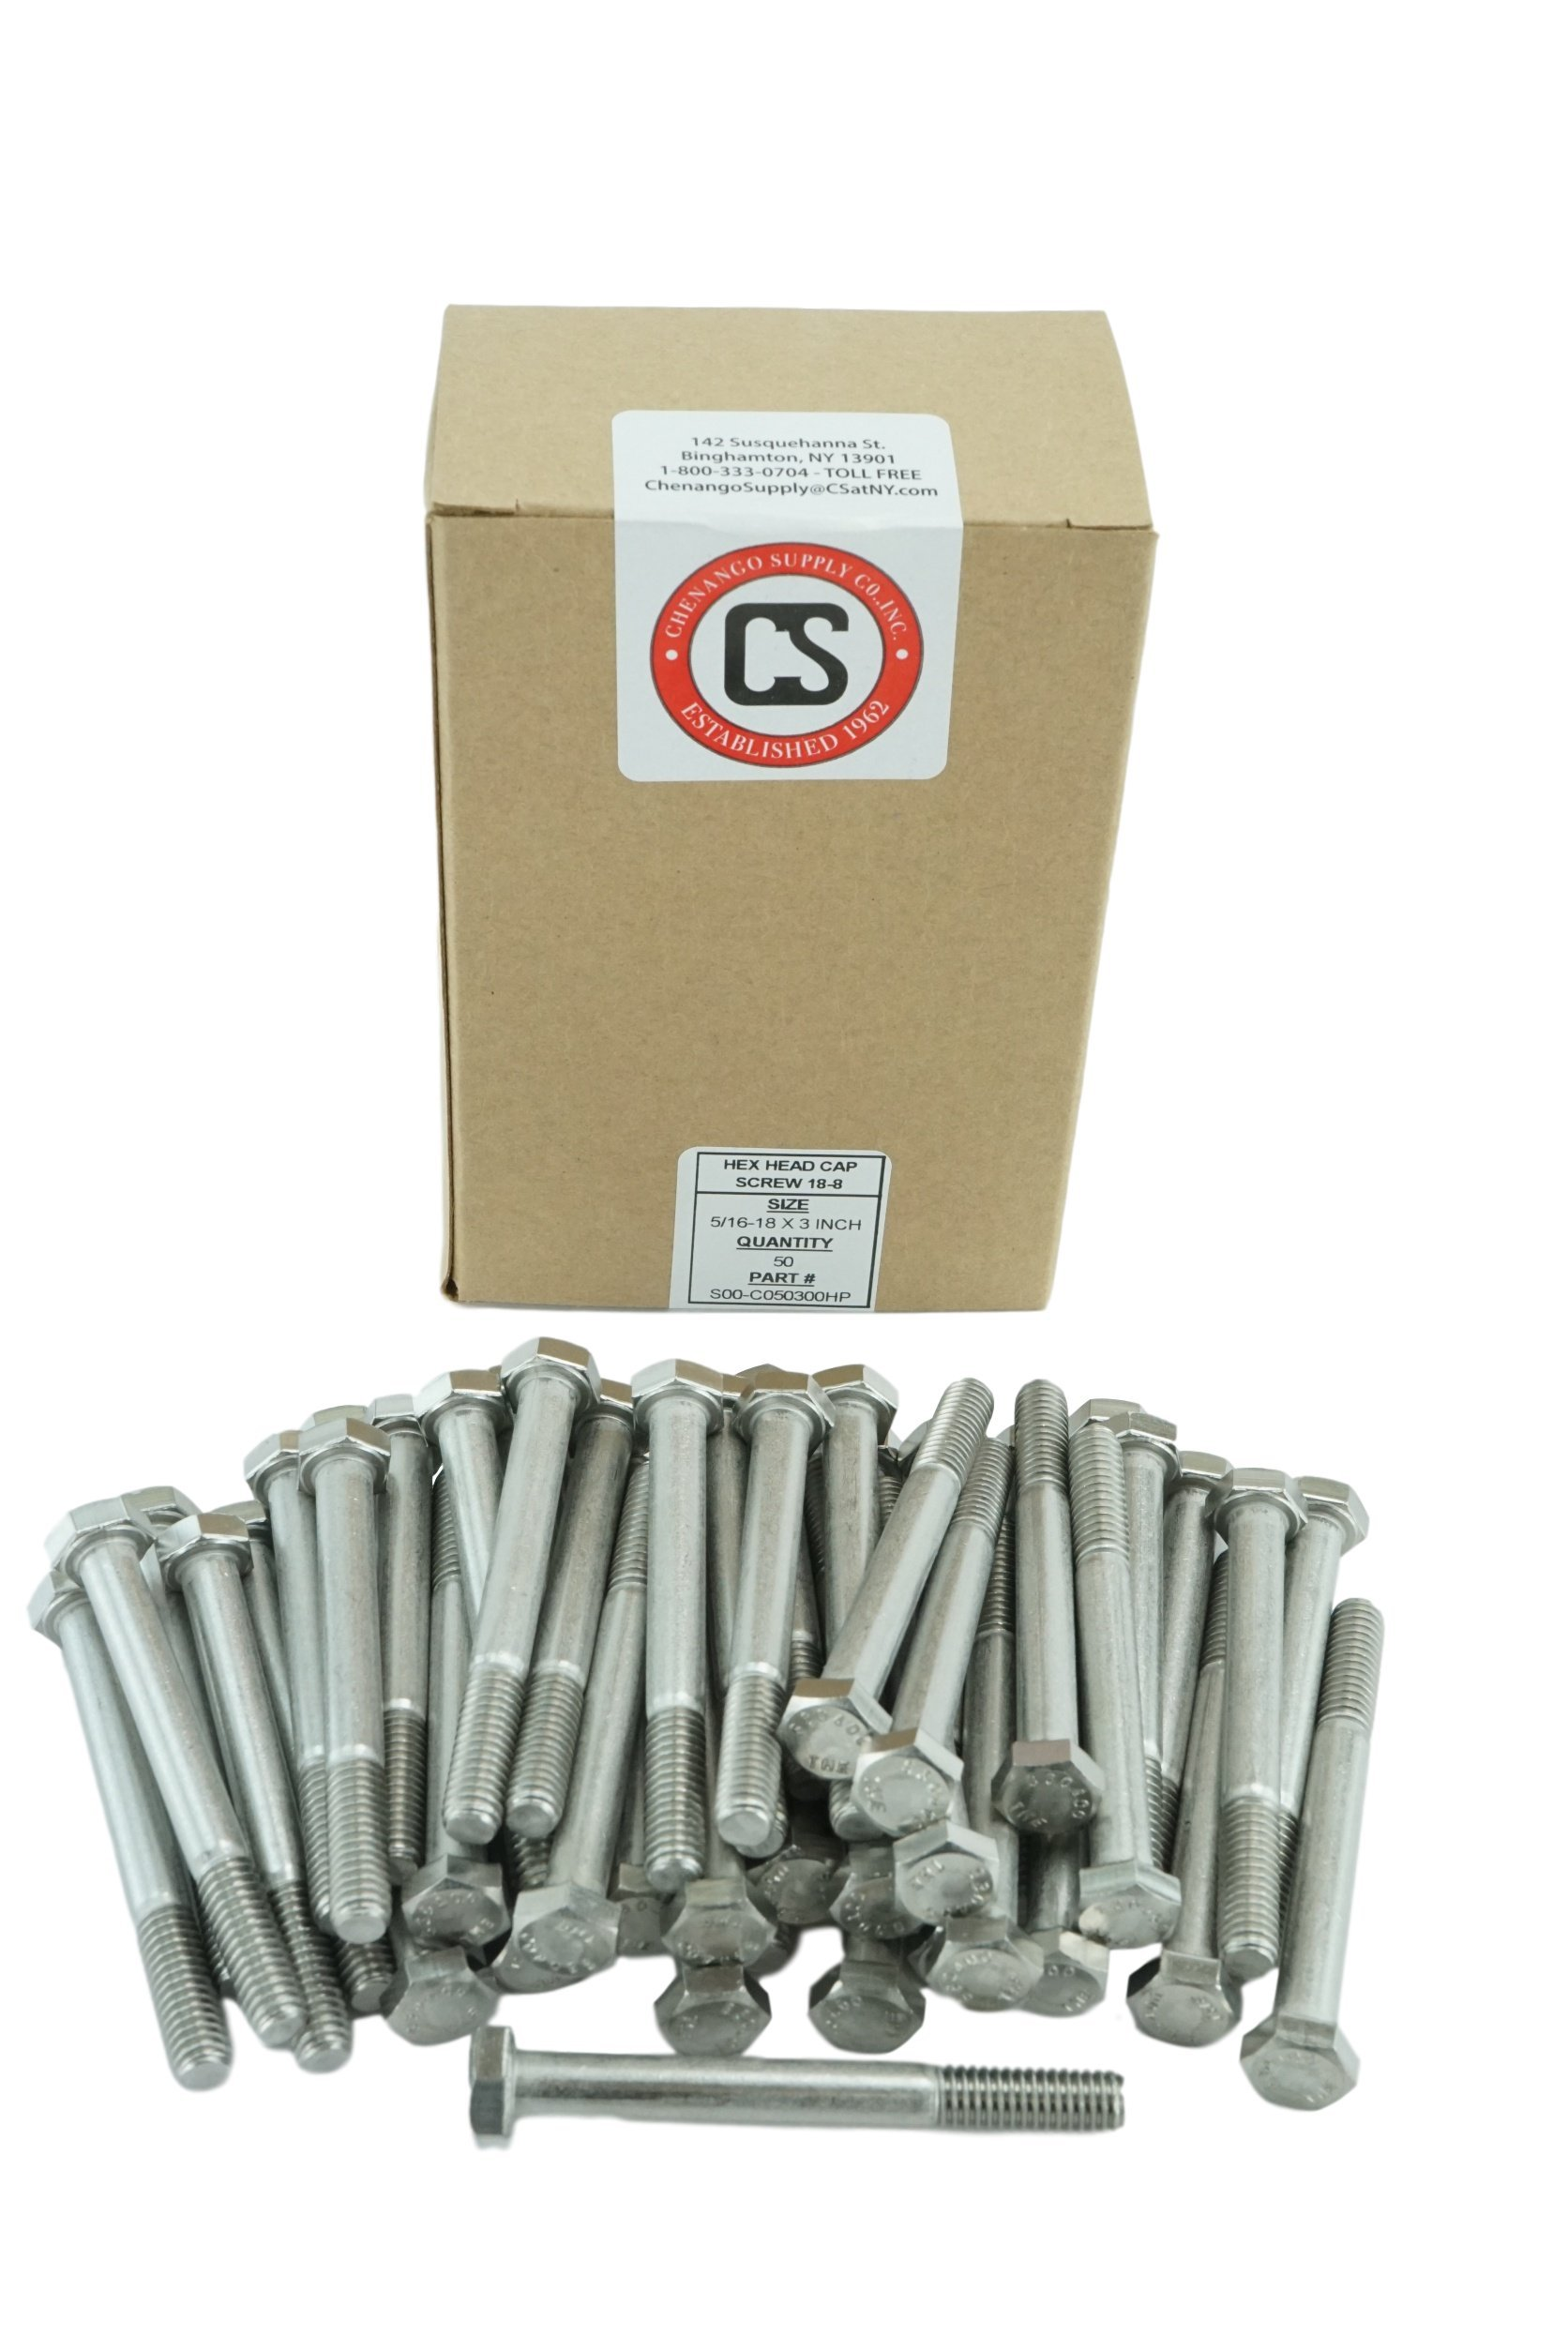 Stainless 5/16-18x3'' Hex Head Bolts (1/2'' To 4'' Length in Listing), 304 Stainless Steel (5/16-18x3''(50pcs)) by Chenango Supply (Image #1)